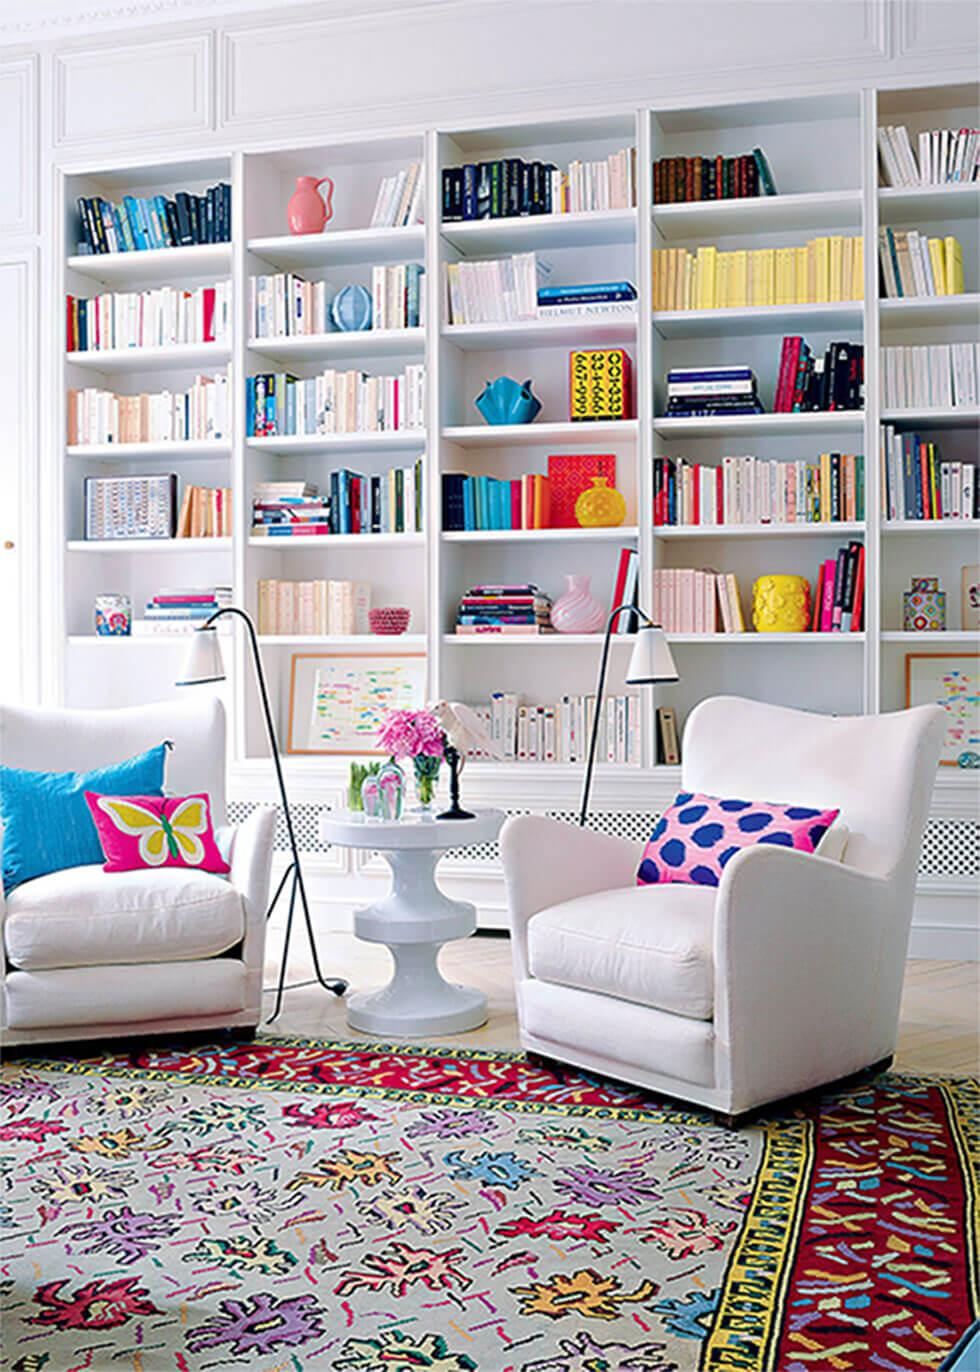 Living room with white armchairs and bookshelves, with colourful rug, cushion and decor.